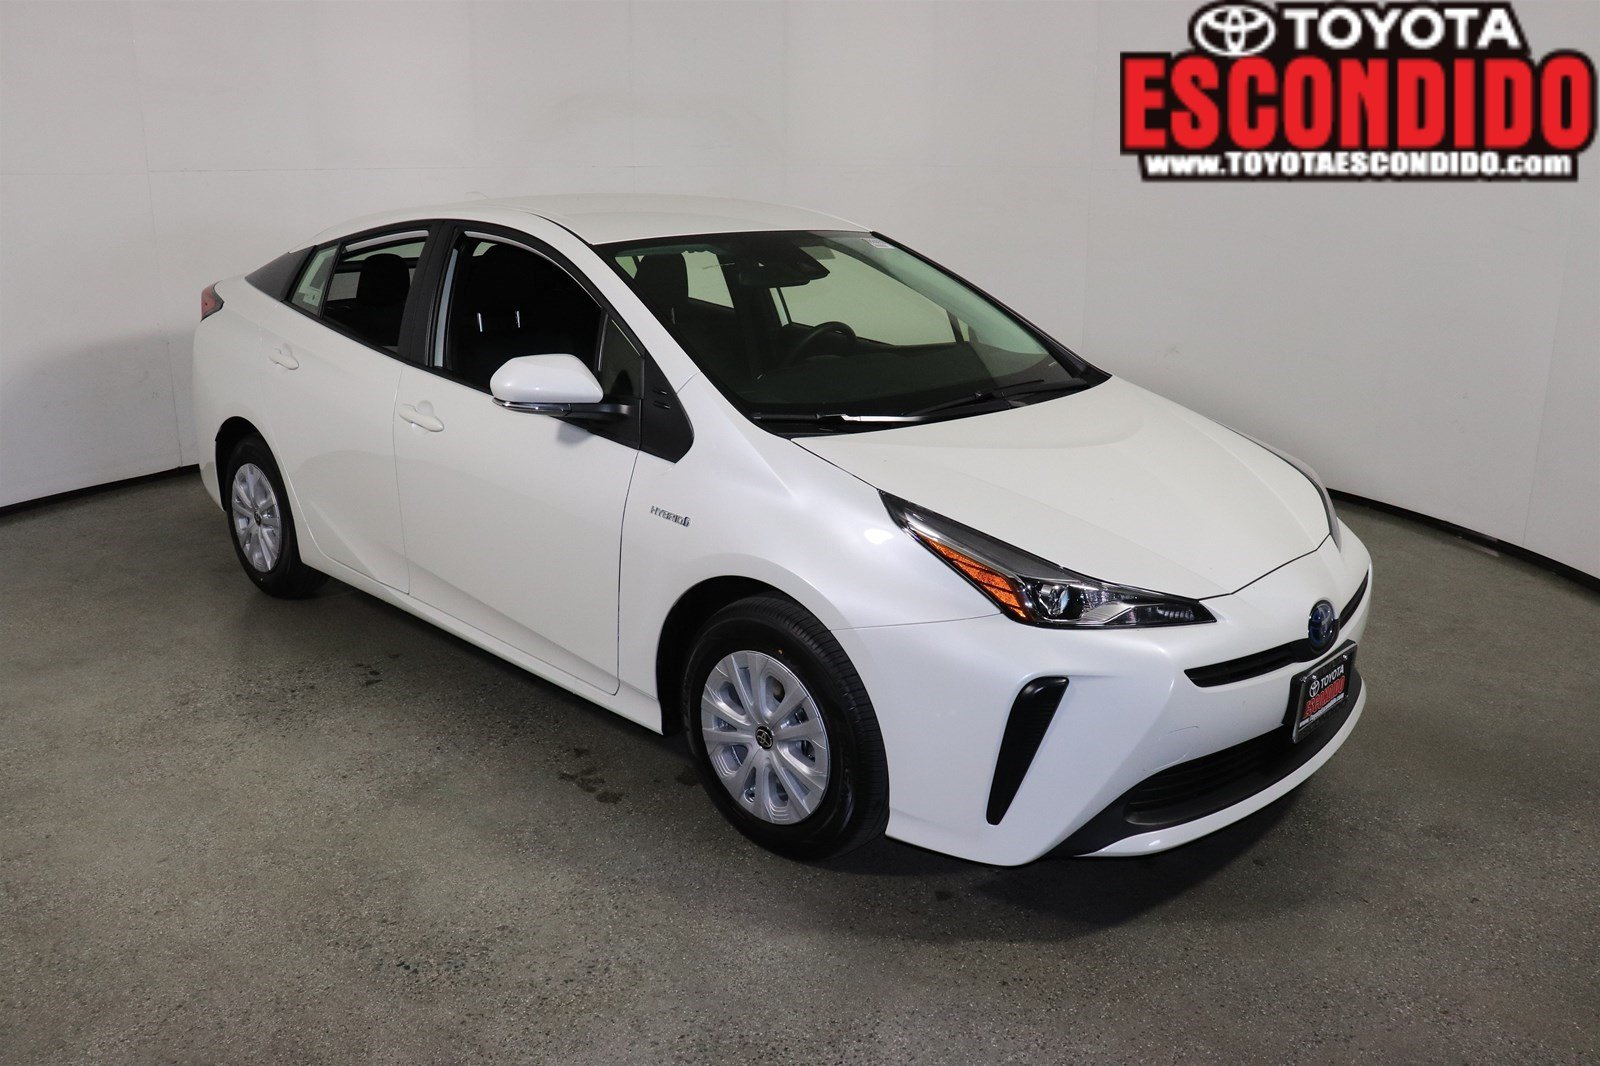 New 2020 Toyota Prius L Eco Hatchback In Escondido 1026556